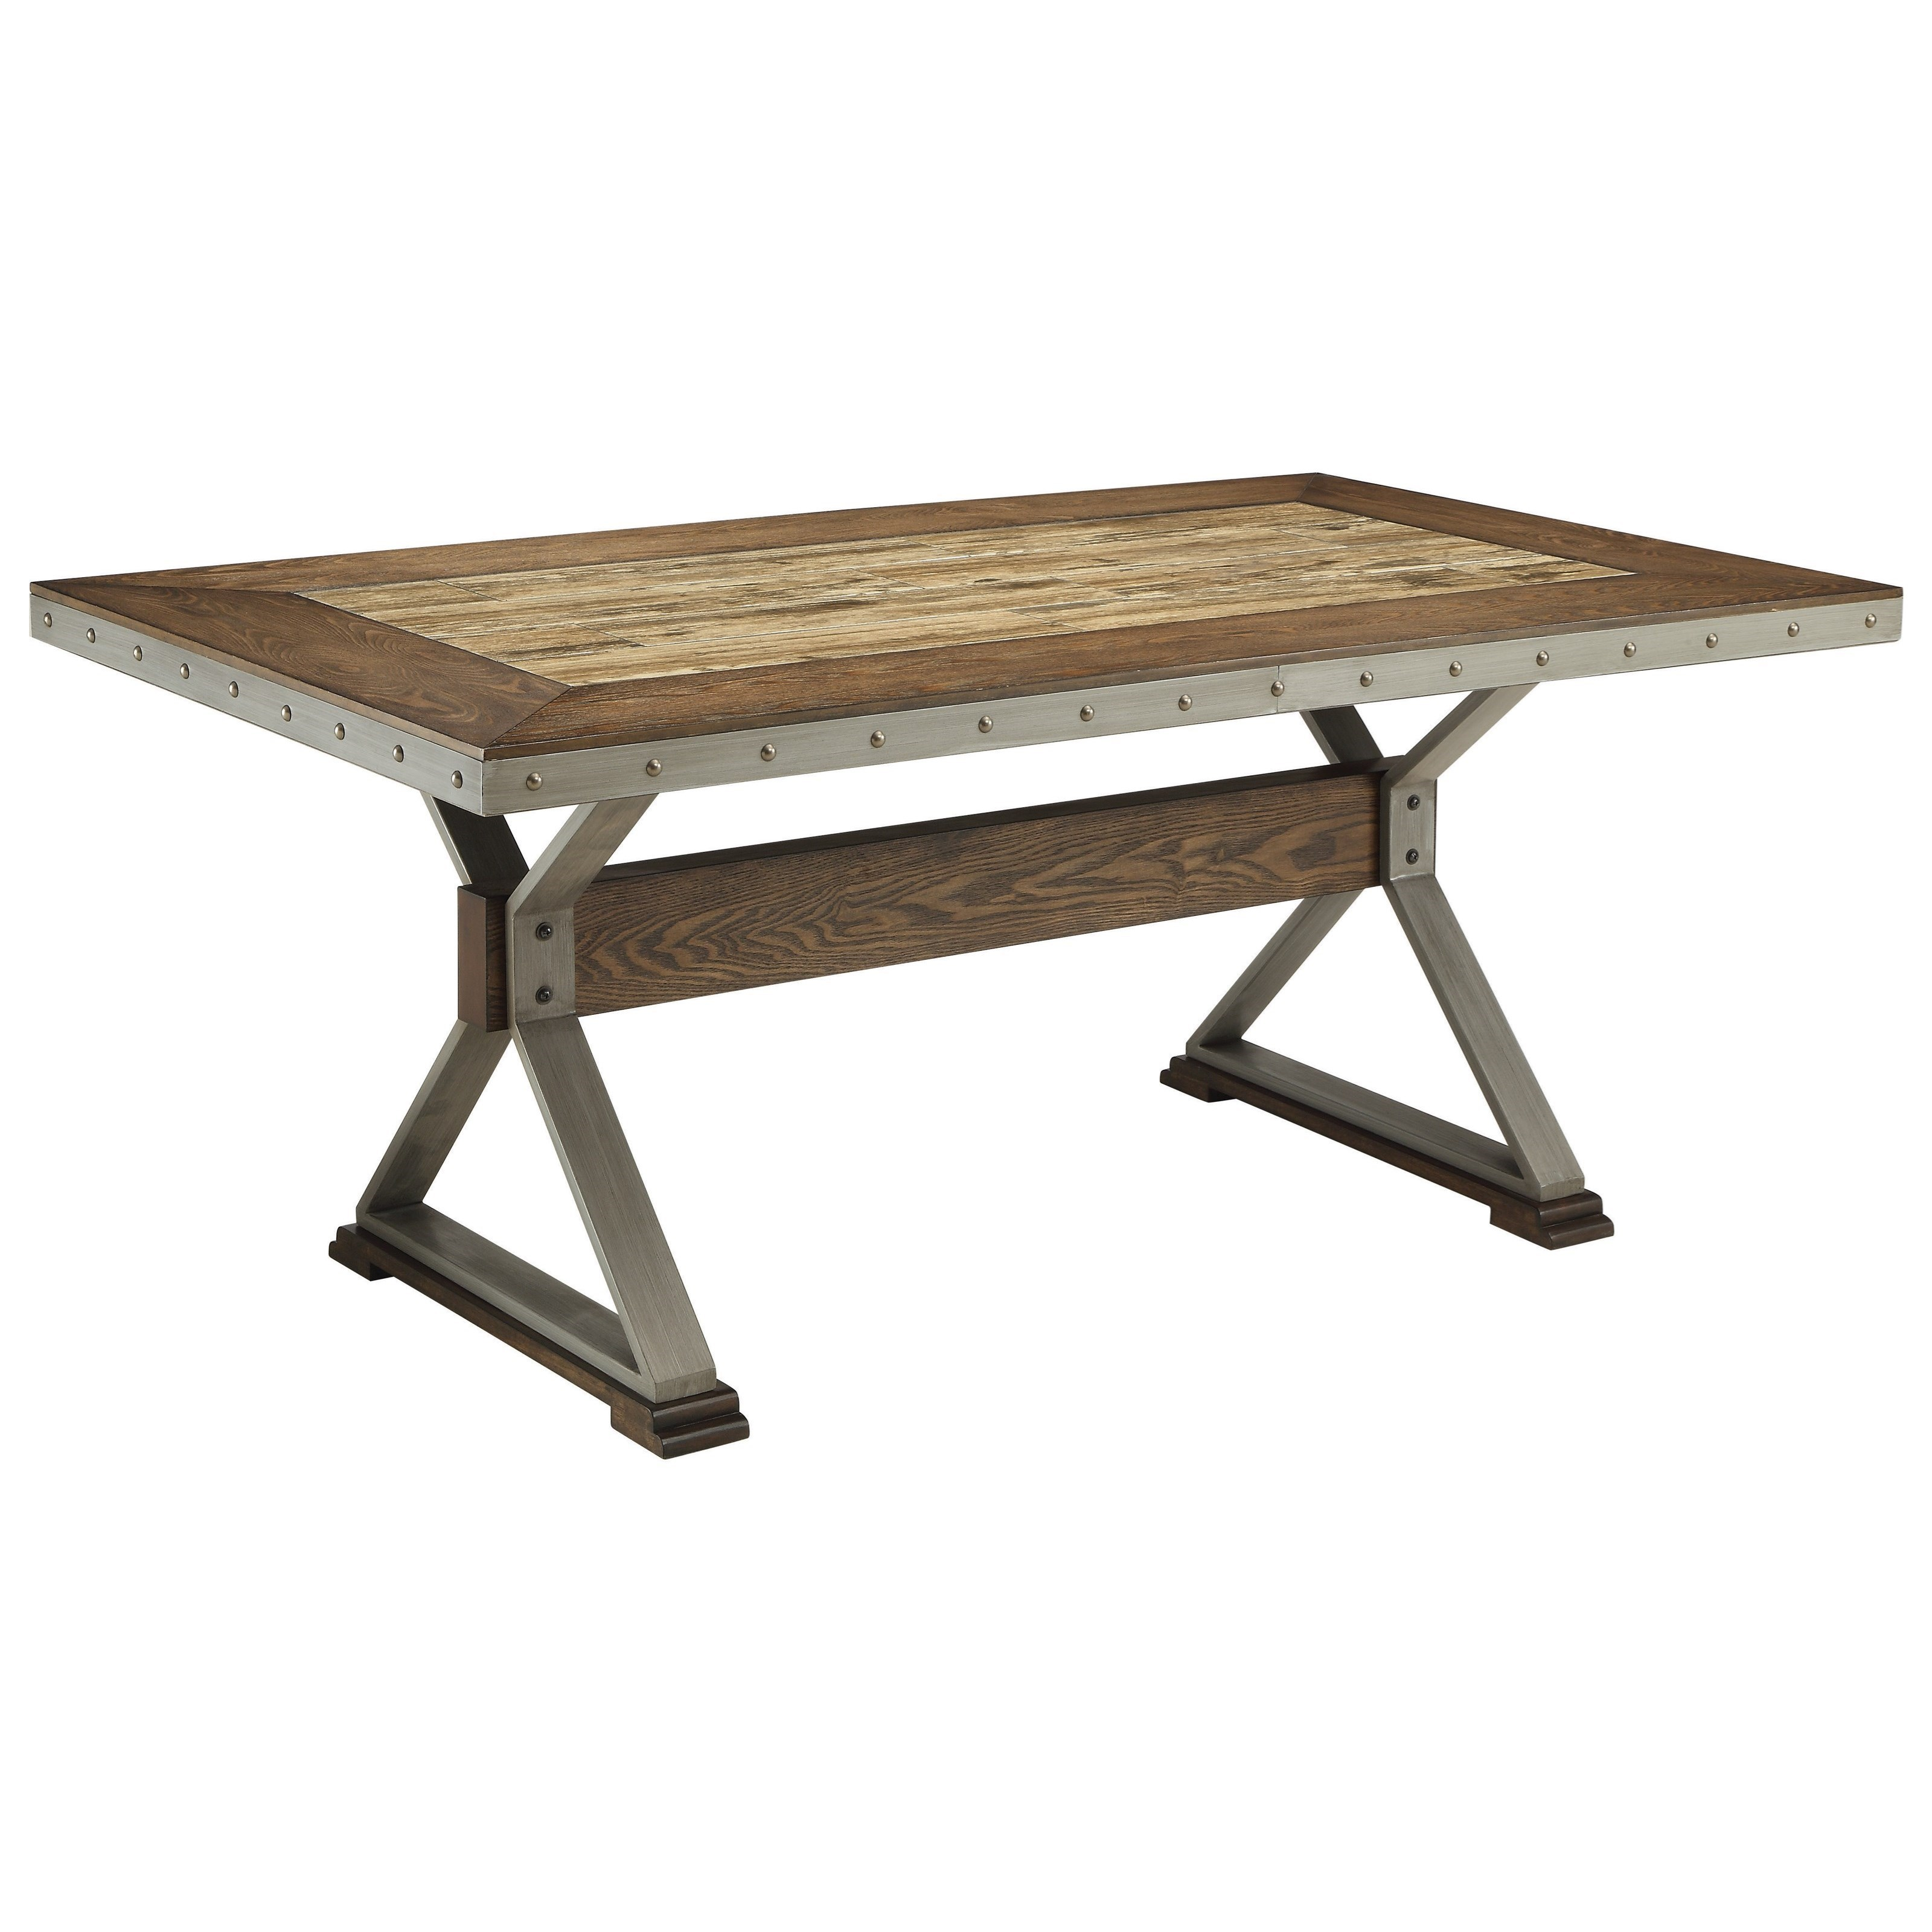 Coaster Beckett Rectangular Rustic Dining Table With Ceramic Tile Top   Del  Sol Furniture   Dining Tables